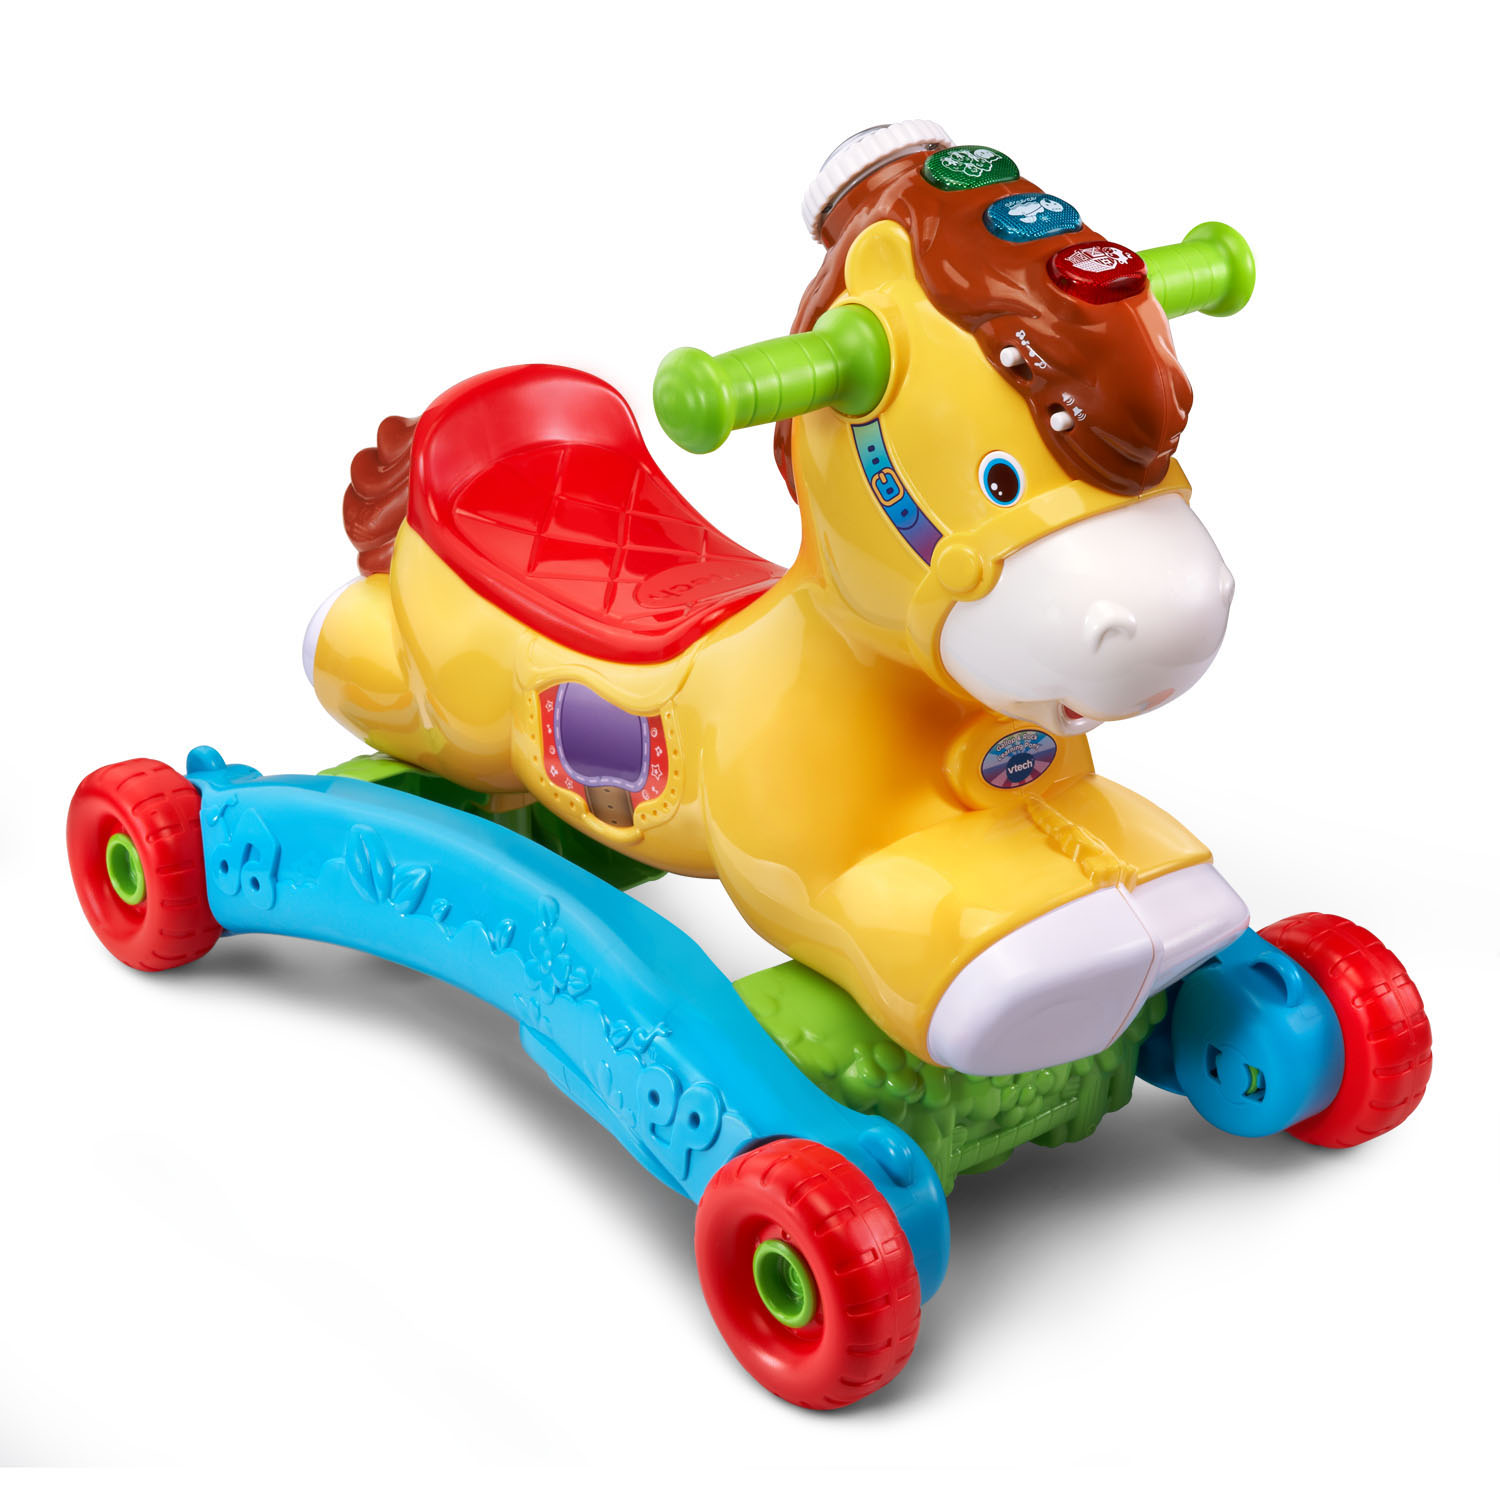 Vtech Gallop And Rock Learning Pony Interactive Ride On Toy Walmart Com Walmart Com